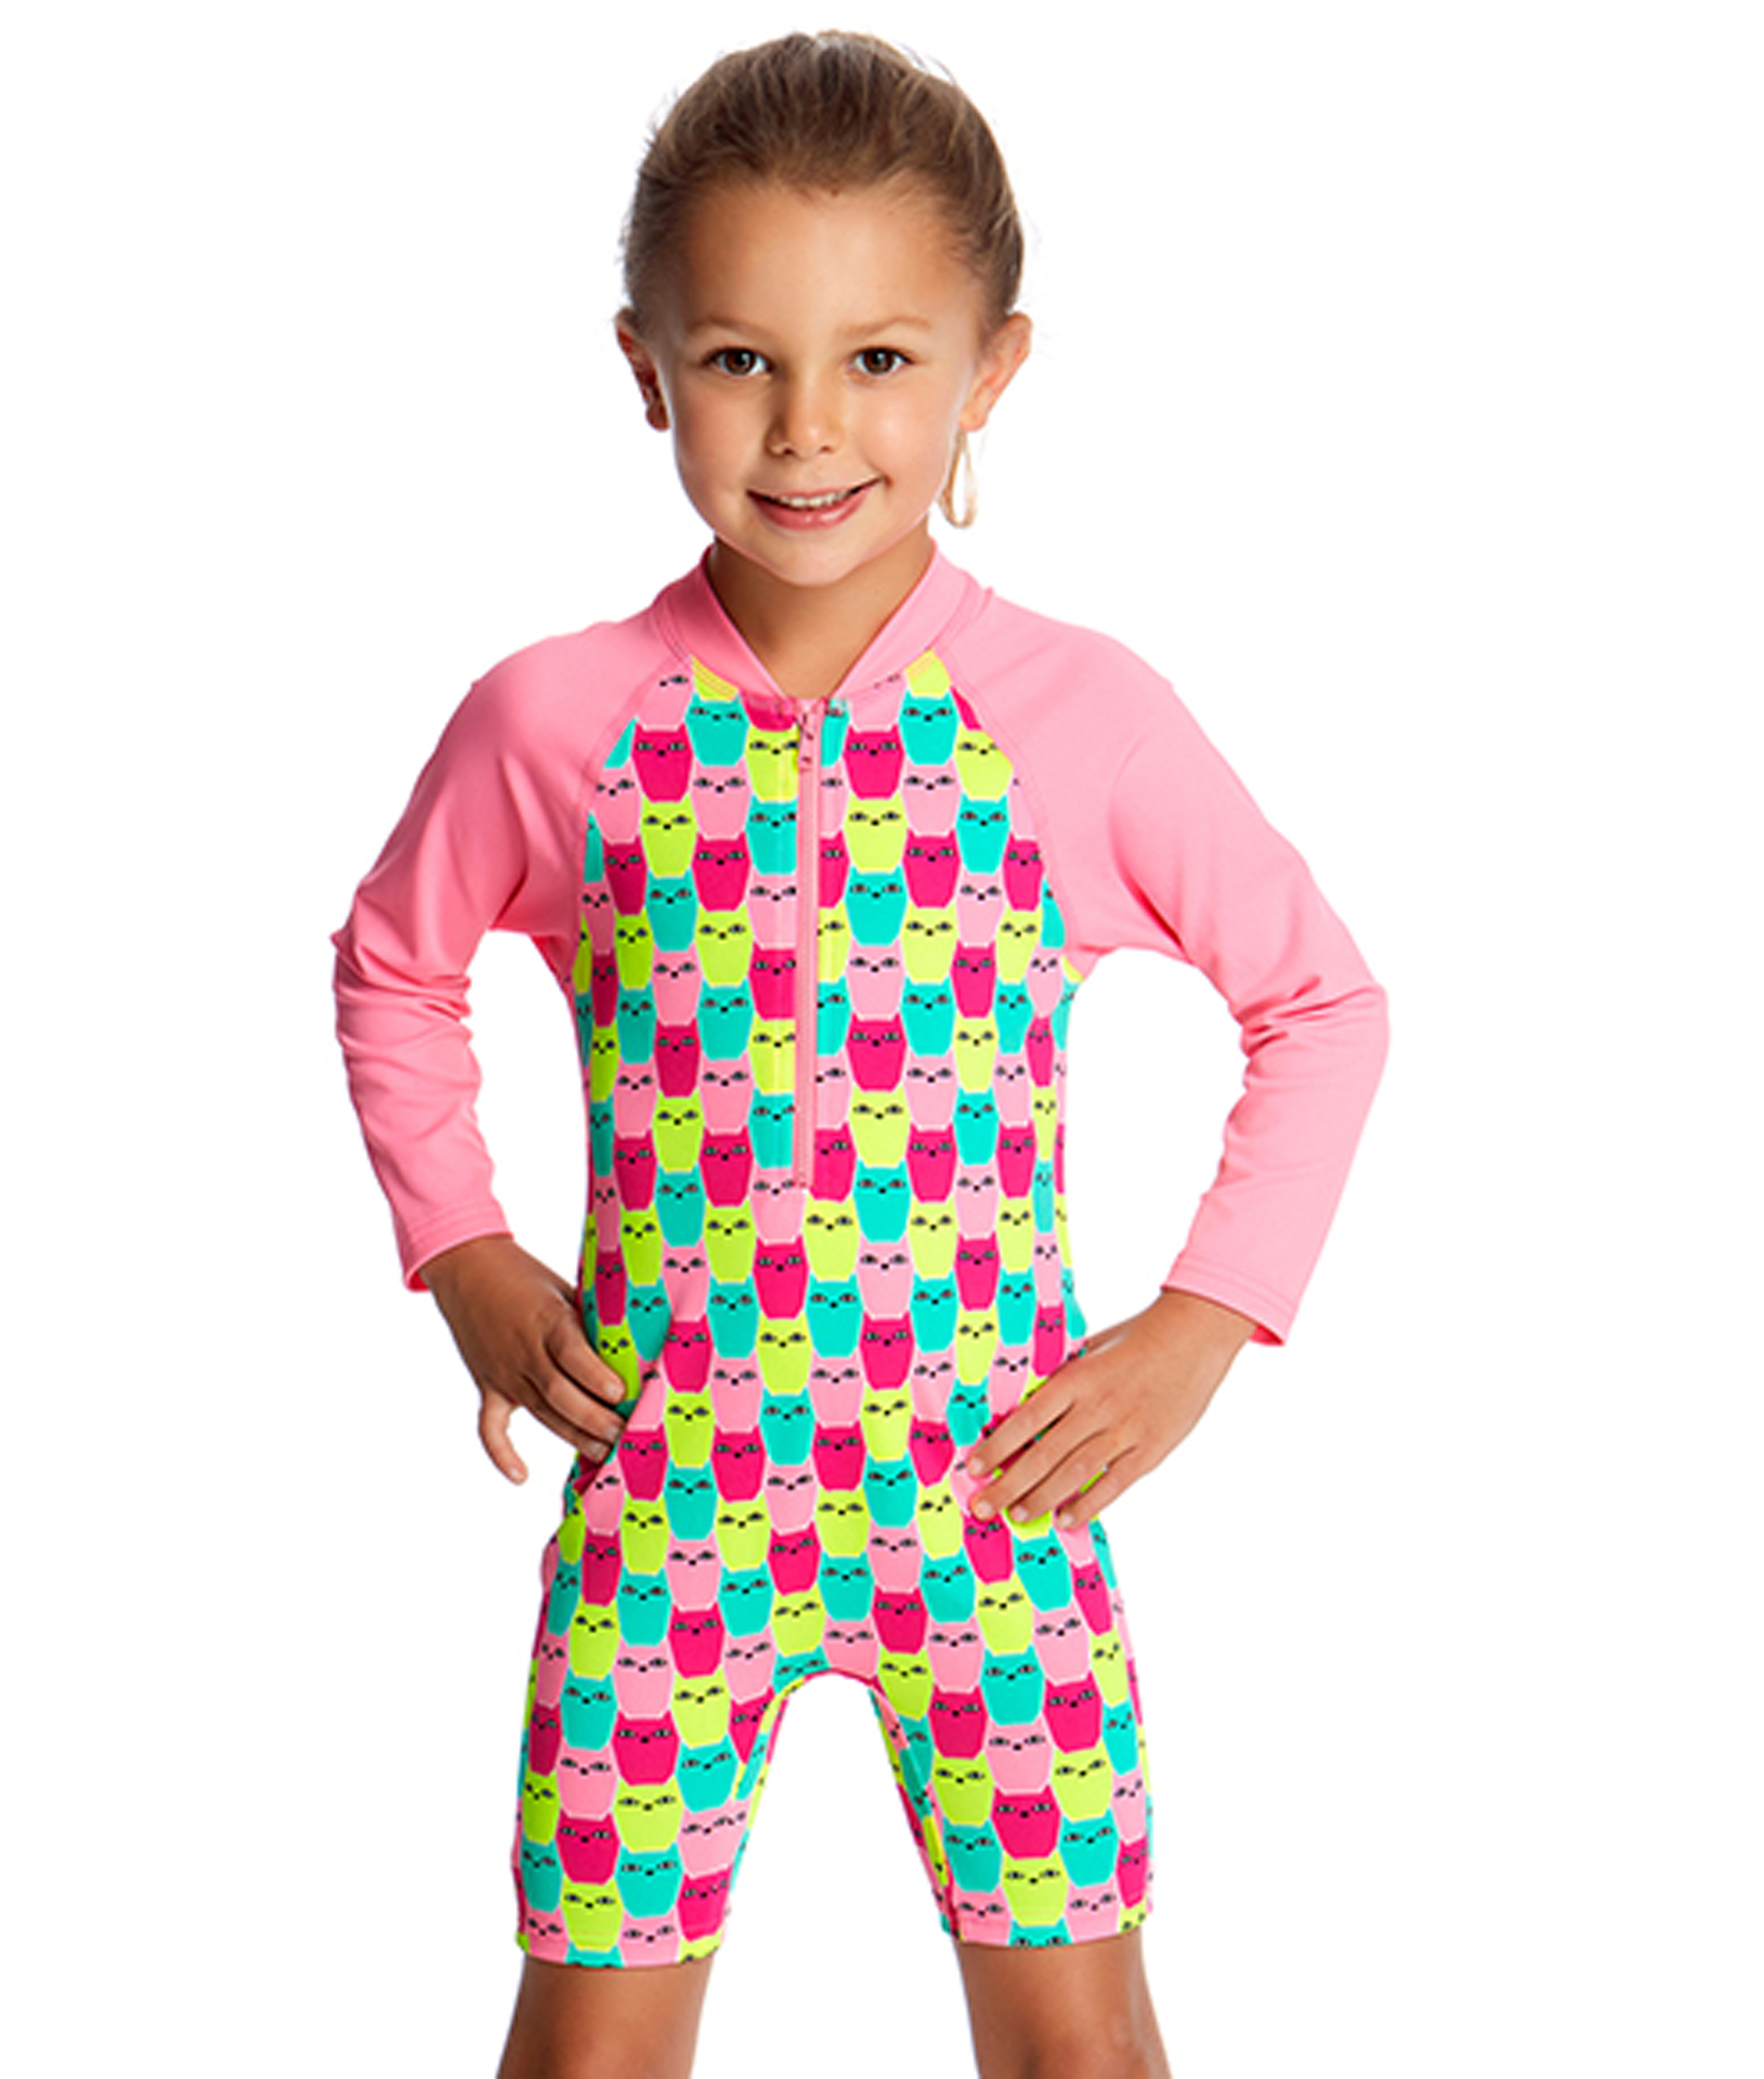 Funkita Toddler Girls Minty Mittens Go Jump Suit